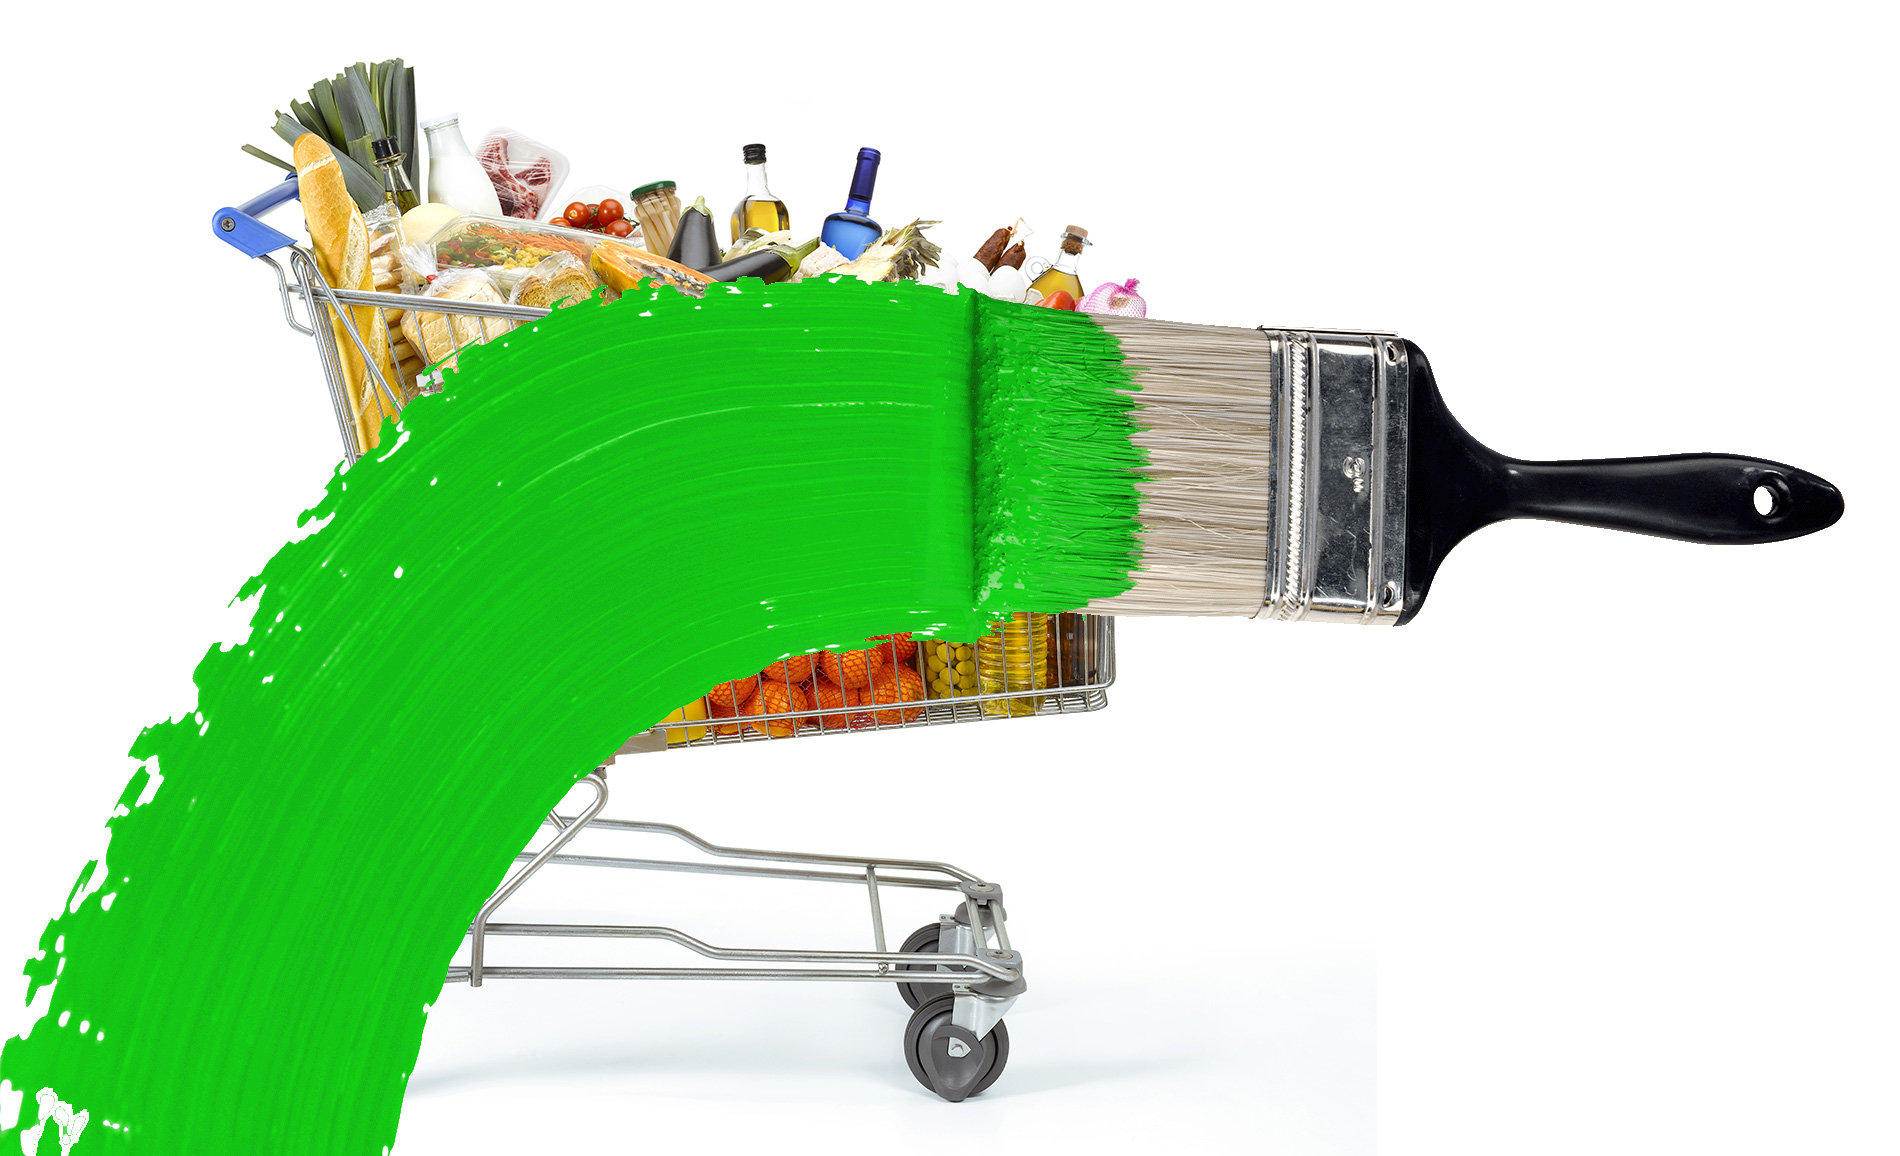 Greenwashing image from greenbiz website. Paintbrush covering a trolley of groceries with a stripe of green paint